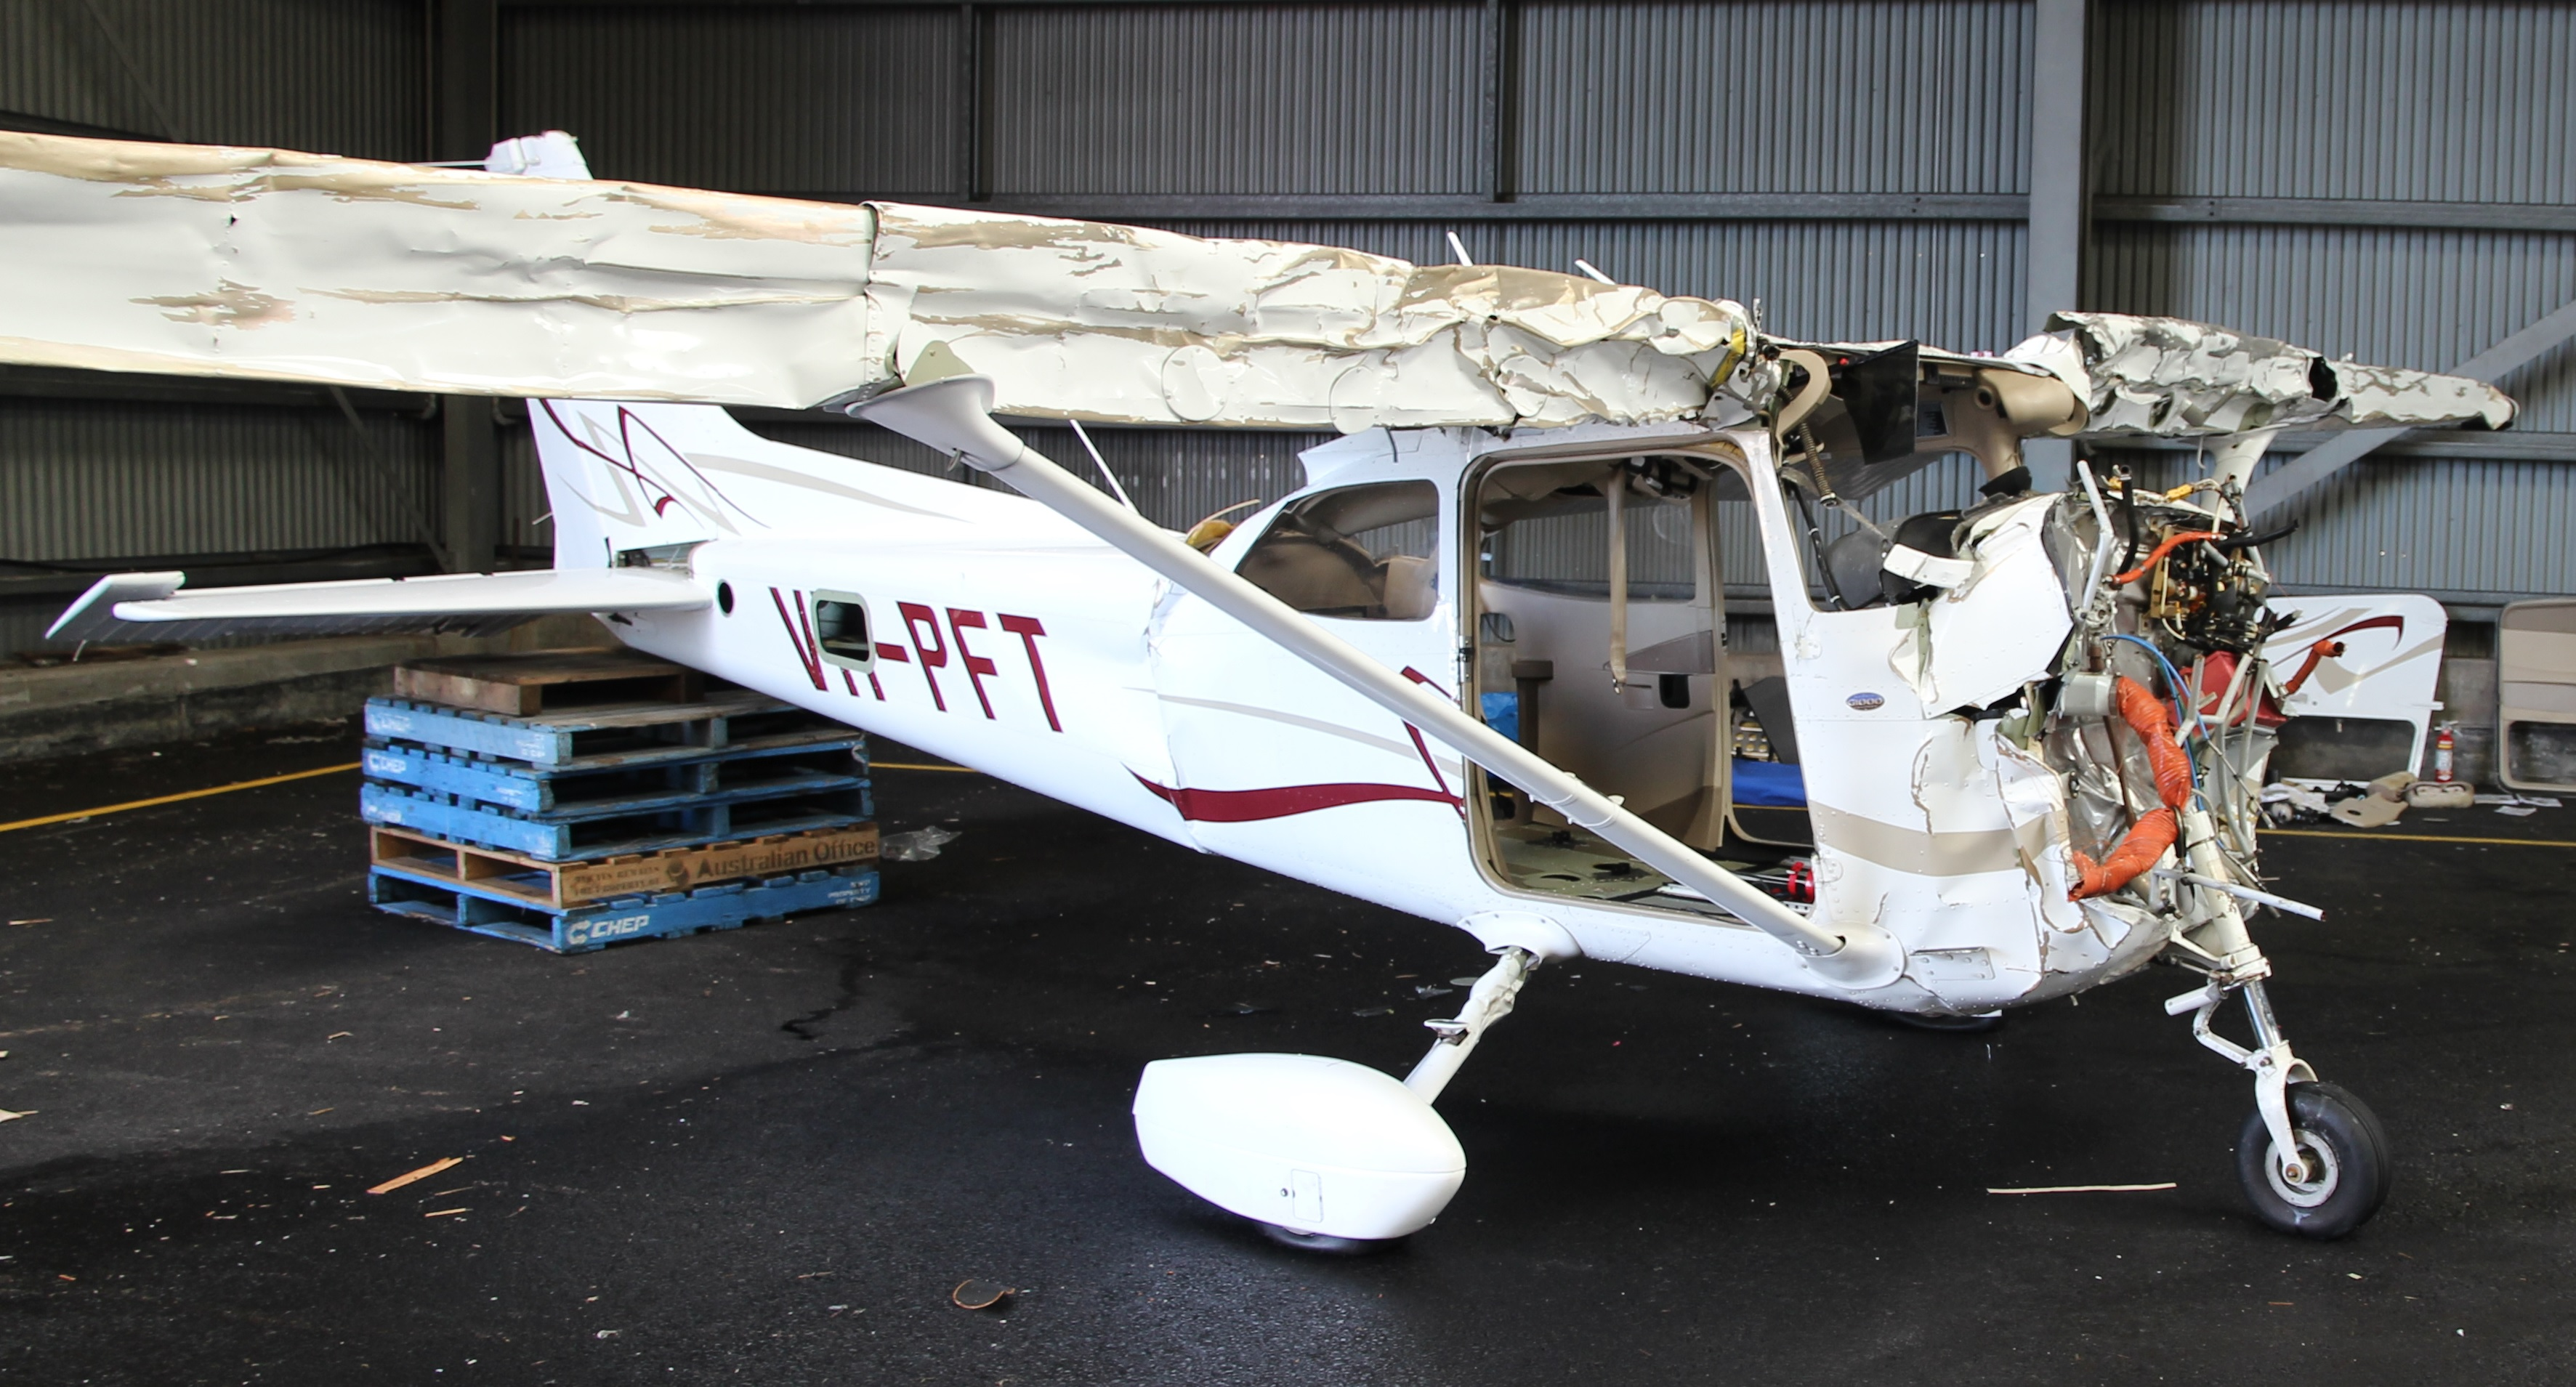 Investigation Ao 2014 192 Collision With Terrain Cessna 172 Vh 152 Navigation Light Wiring Diagram Figure 6 Aircraft Wreckage After Recovery